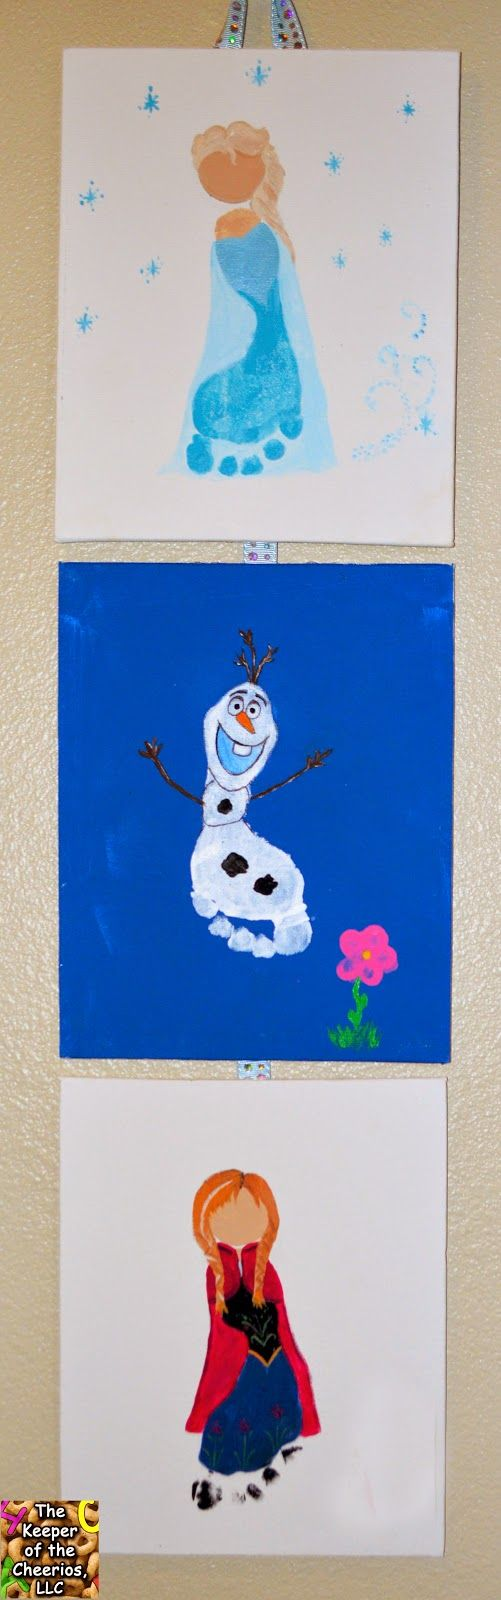 Disney Frozen Footprints, Elsa Footprint, Olaf Footprint, Anna Footprint